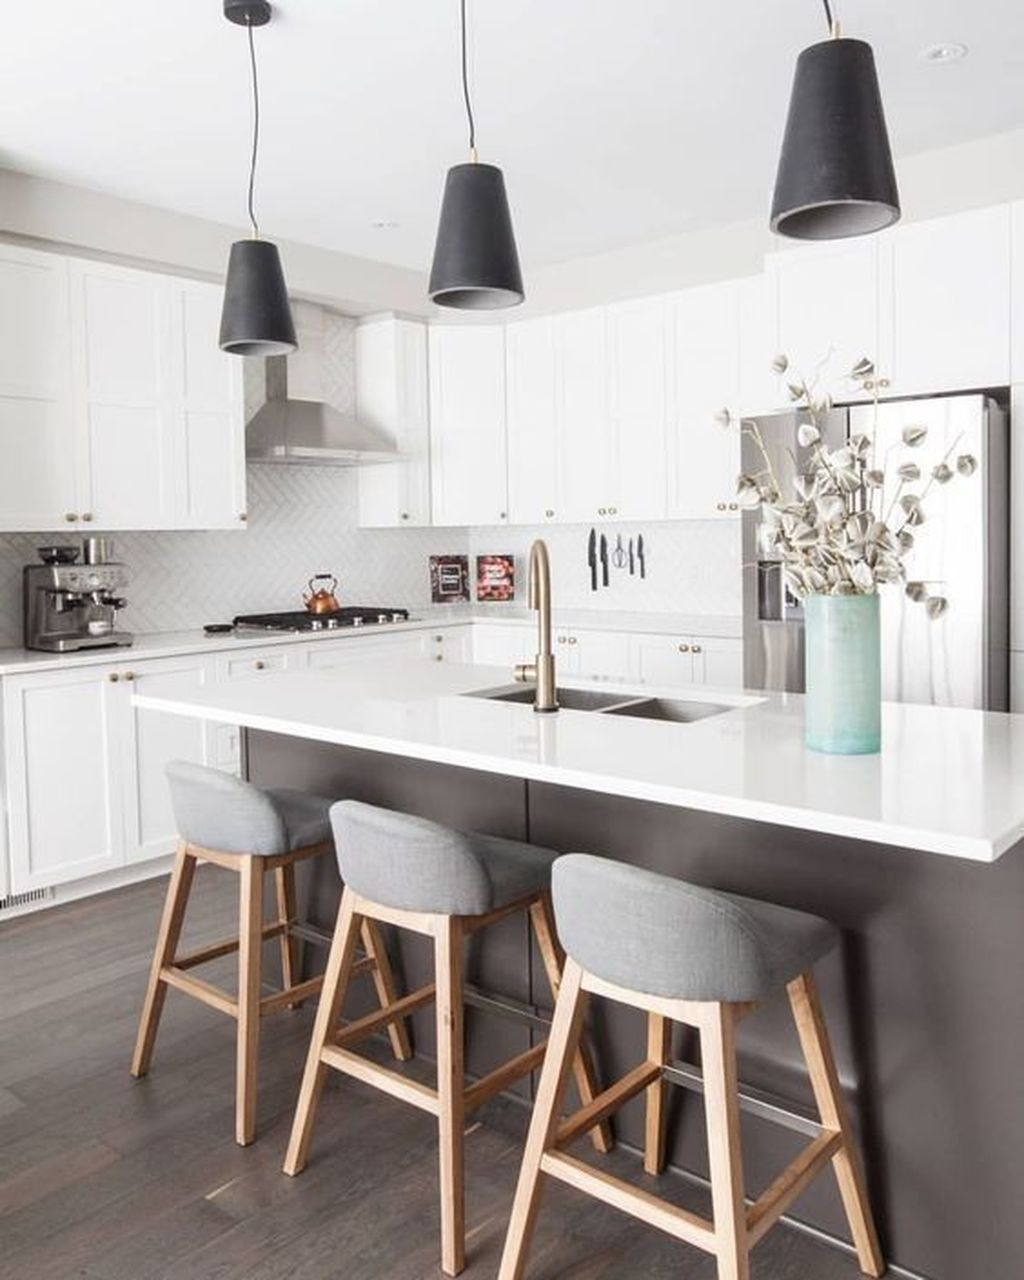 Best Tiny Kitchen Design Ideas For Your Small Space Inspiration 31